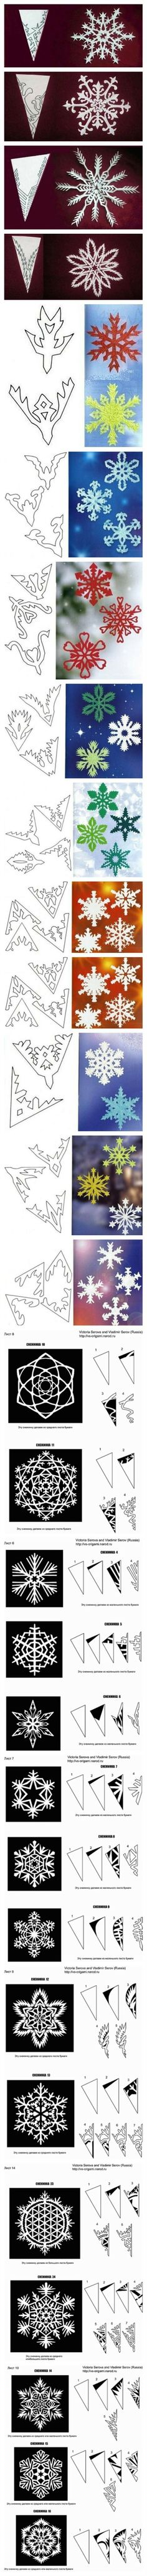 Snowflake patterns!